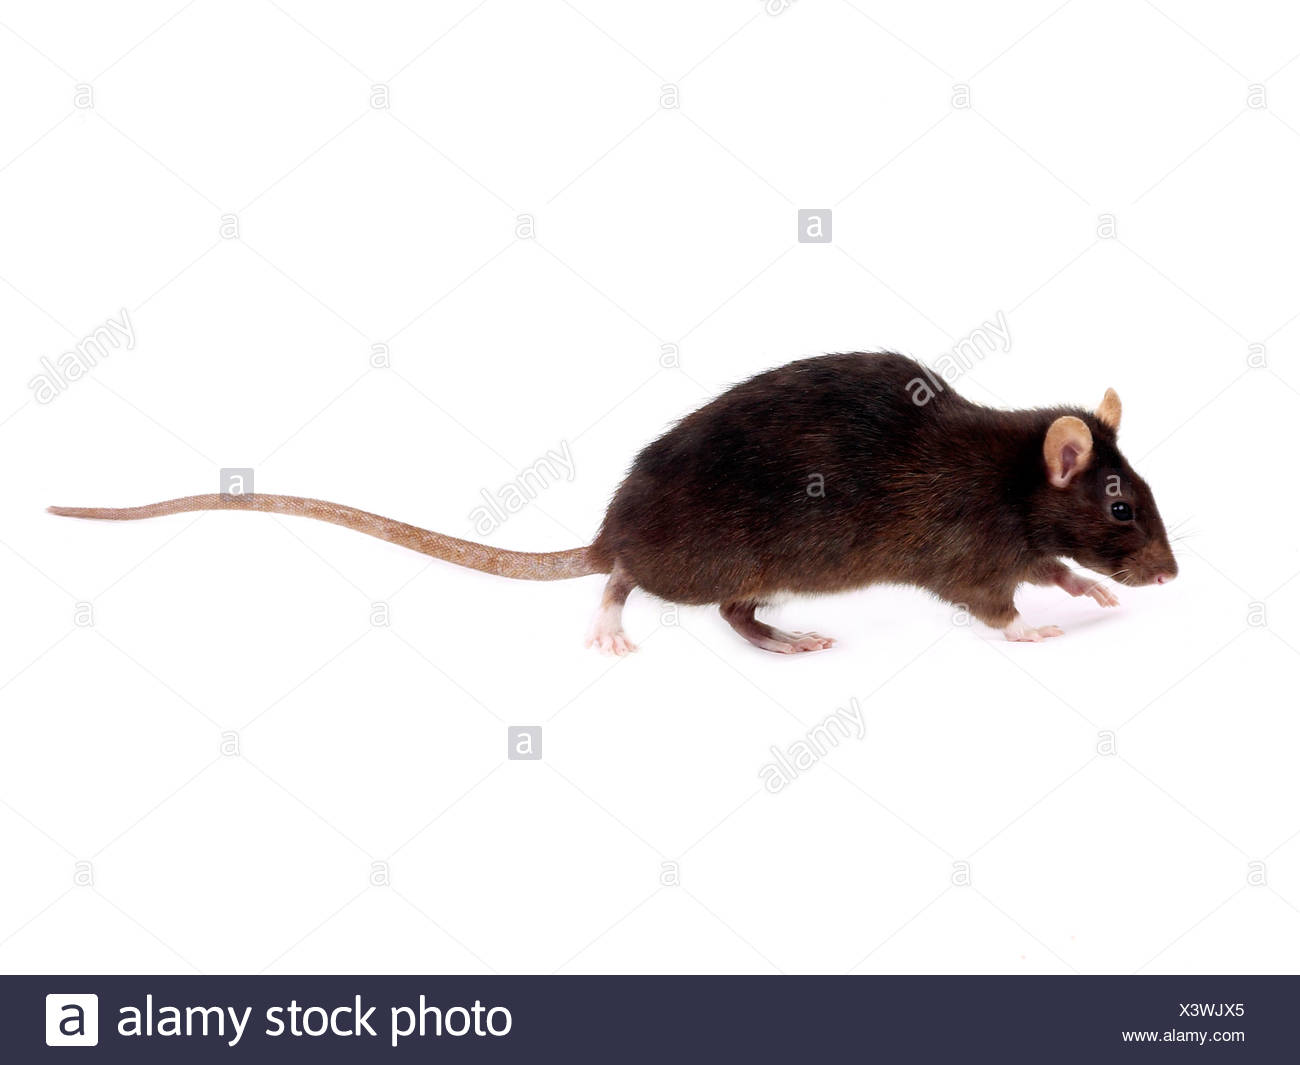 A common brown rat having a sniff - Stock Image